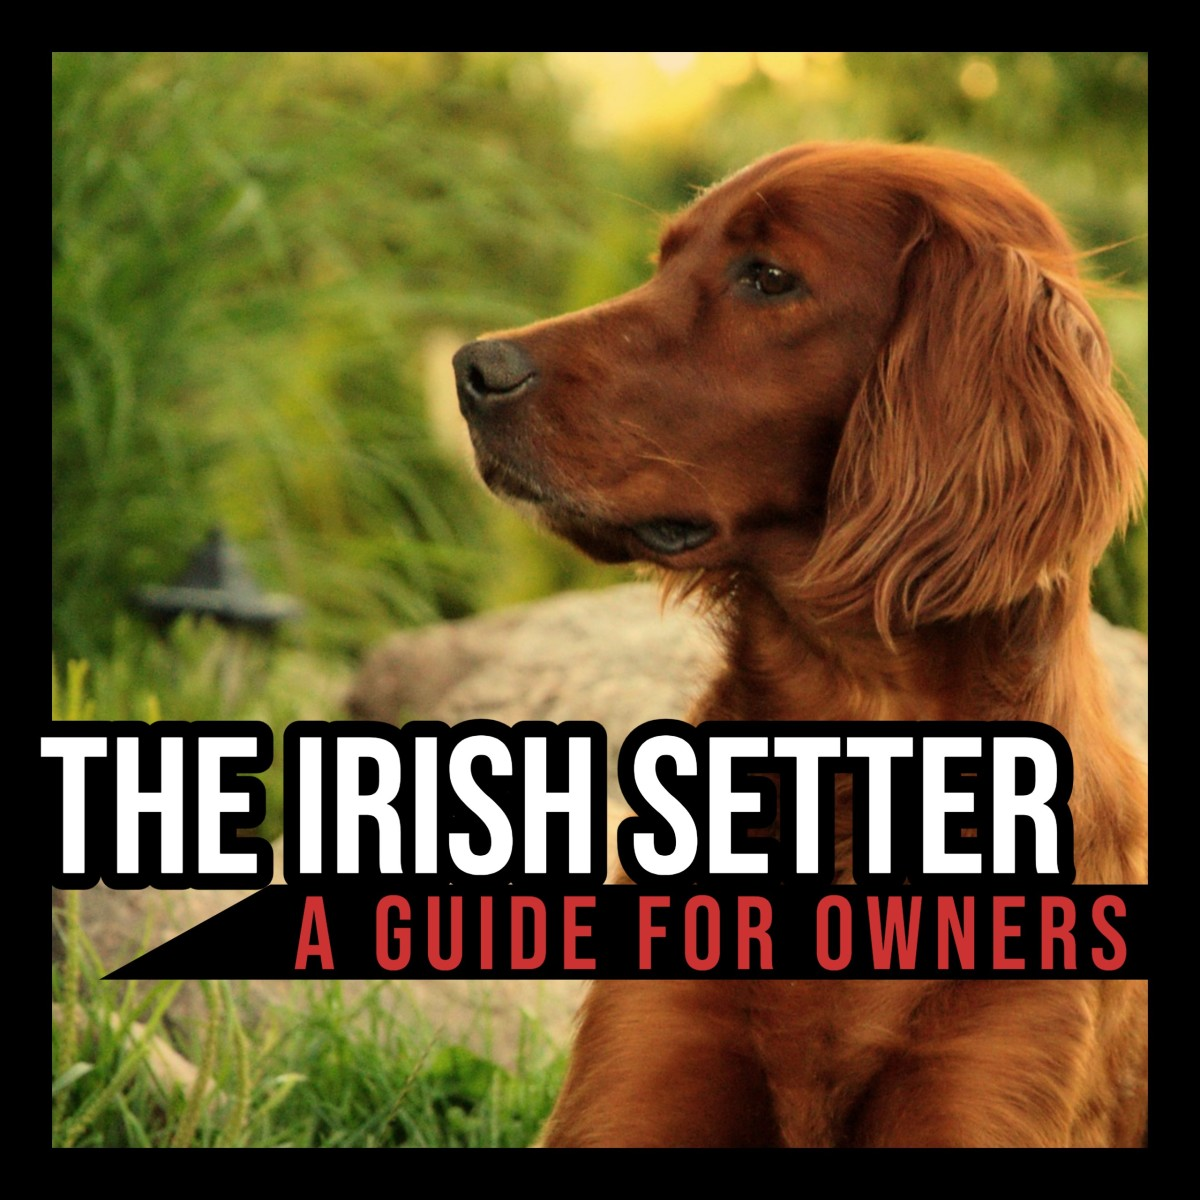 The Irish Setter: A Guide for Owners